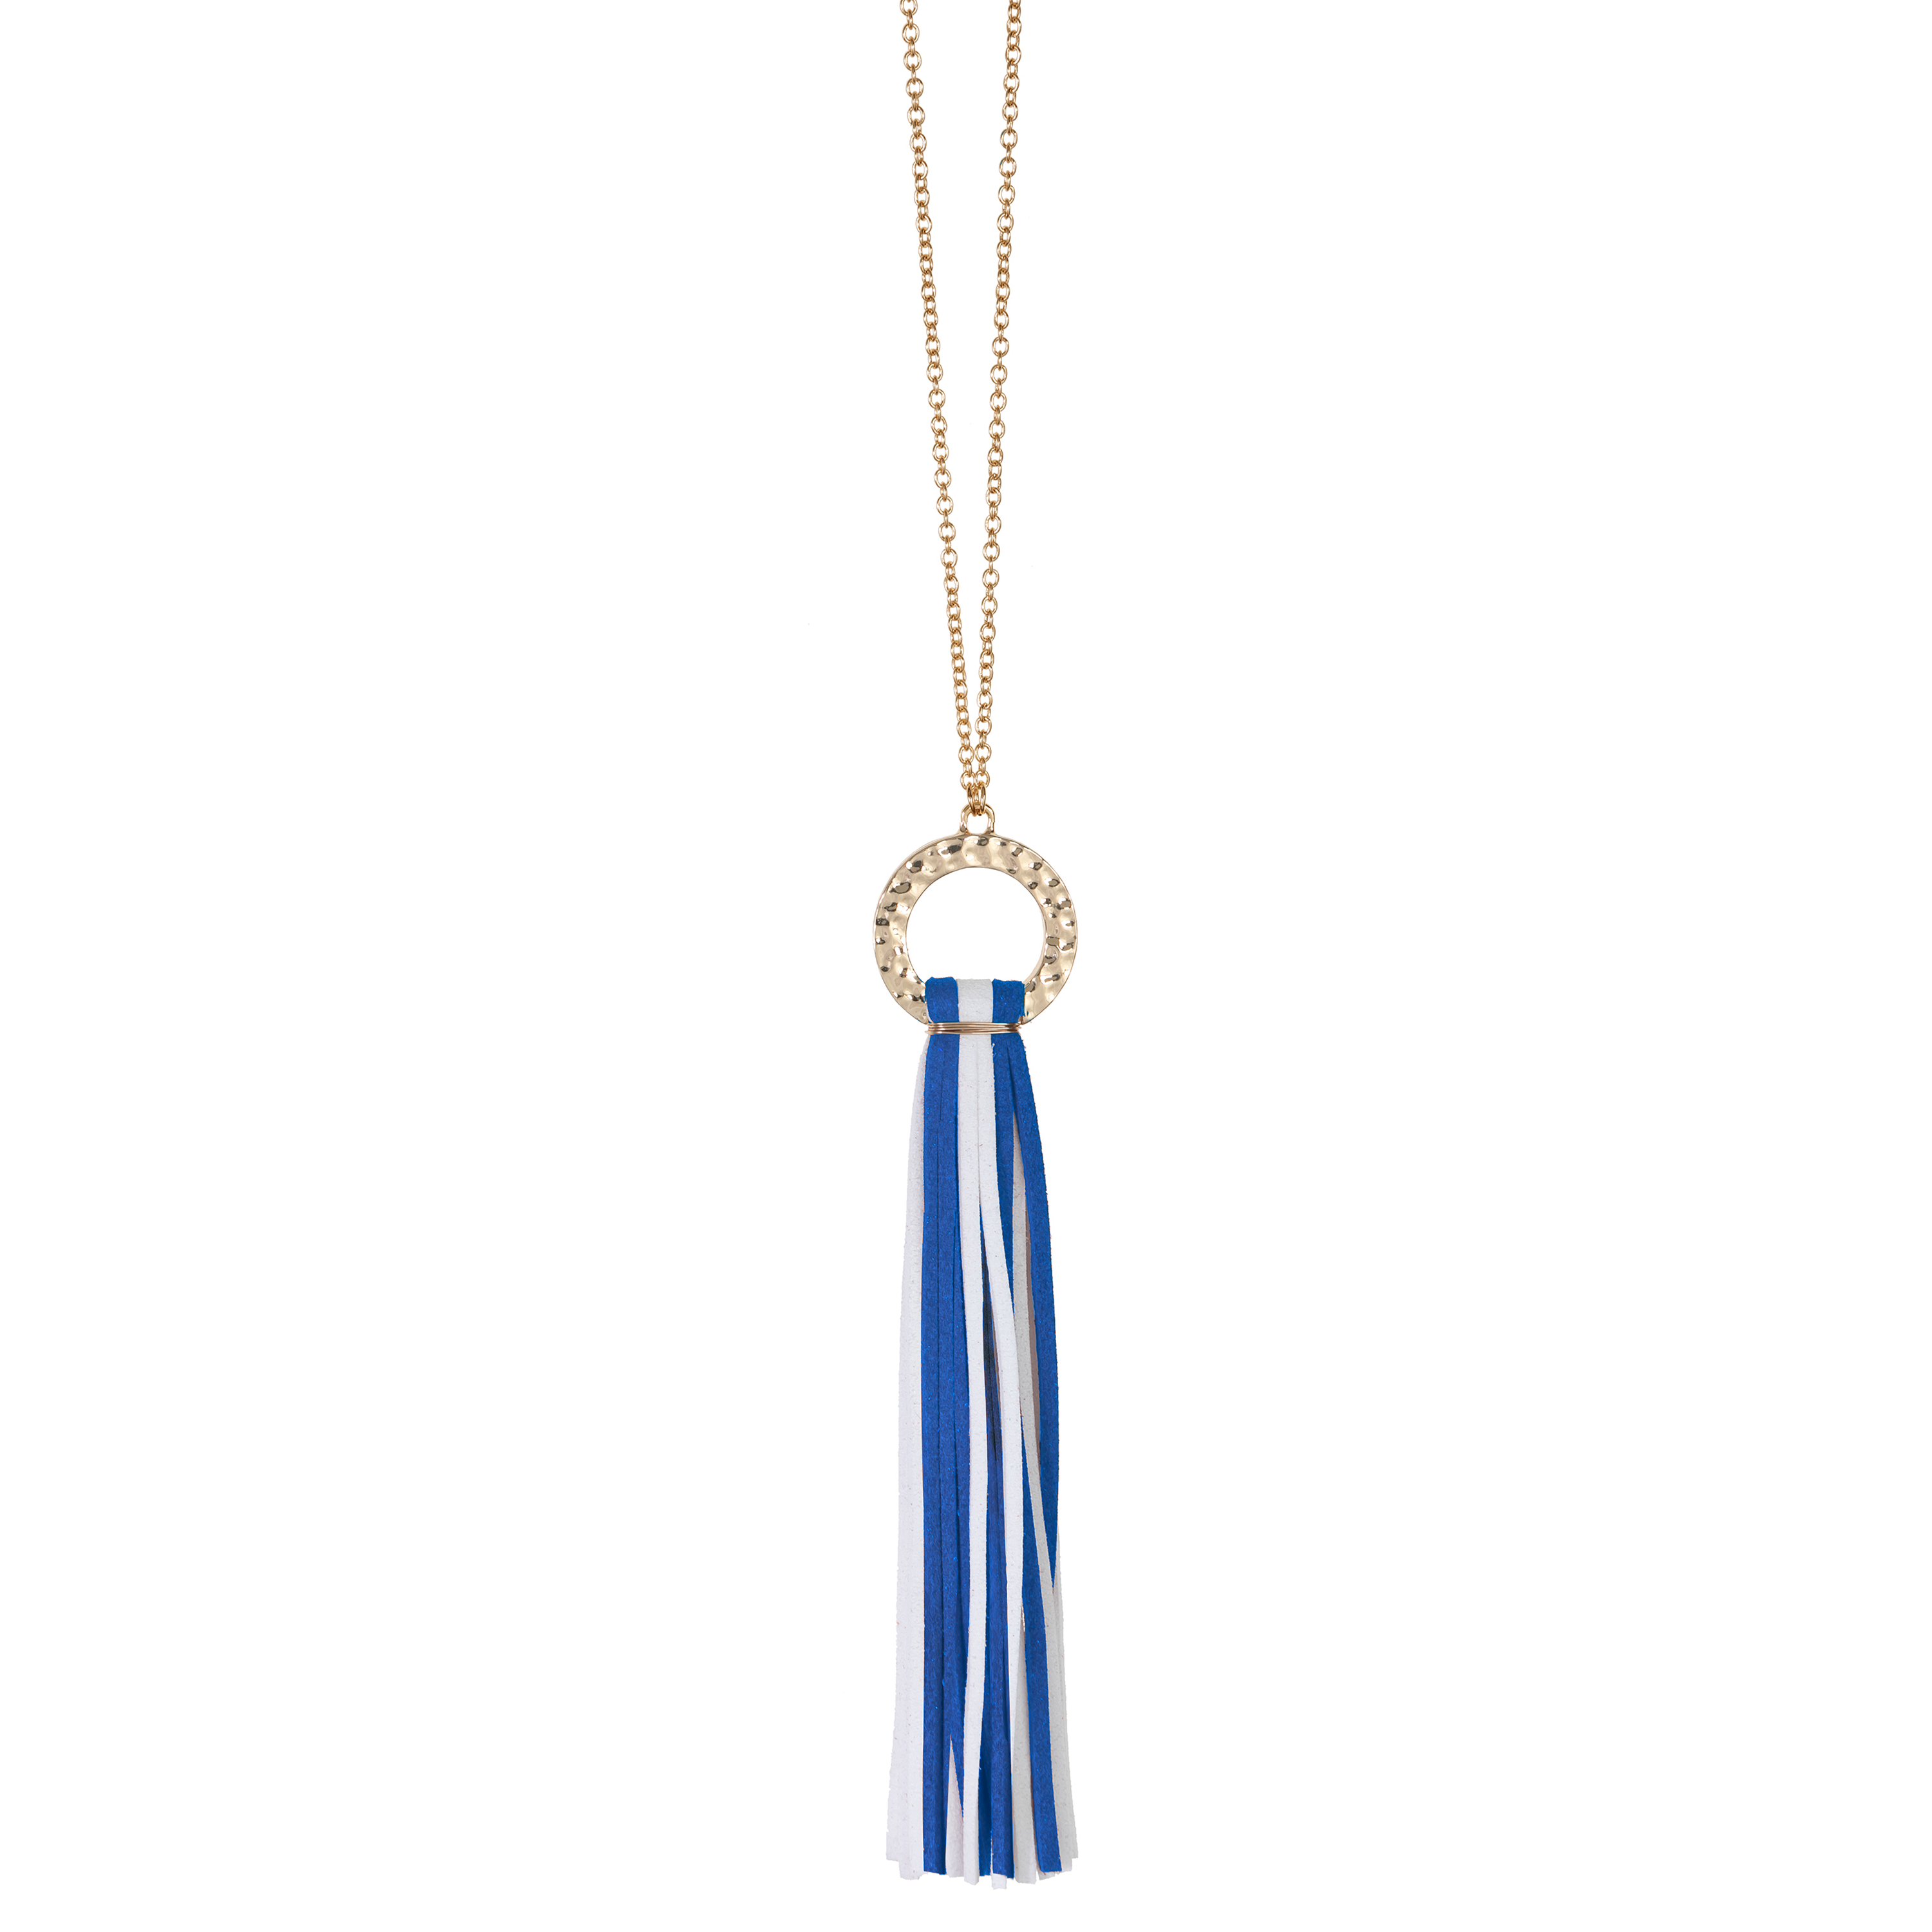 Royal Blue and White suede tassel necklace with gold hammered hoop and nickel free